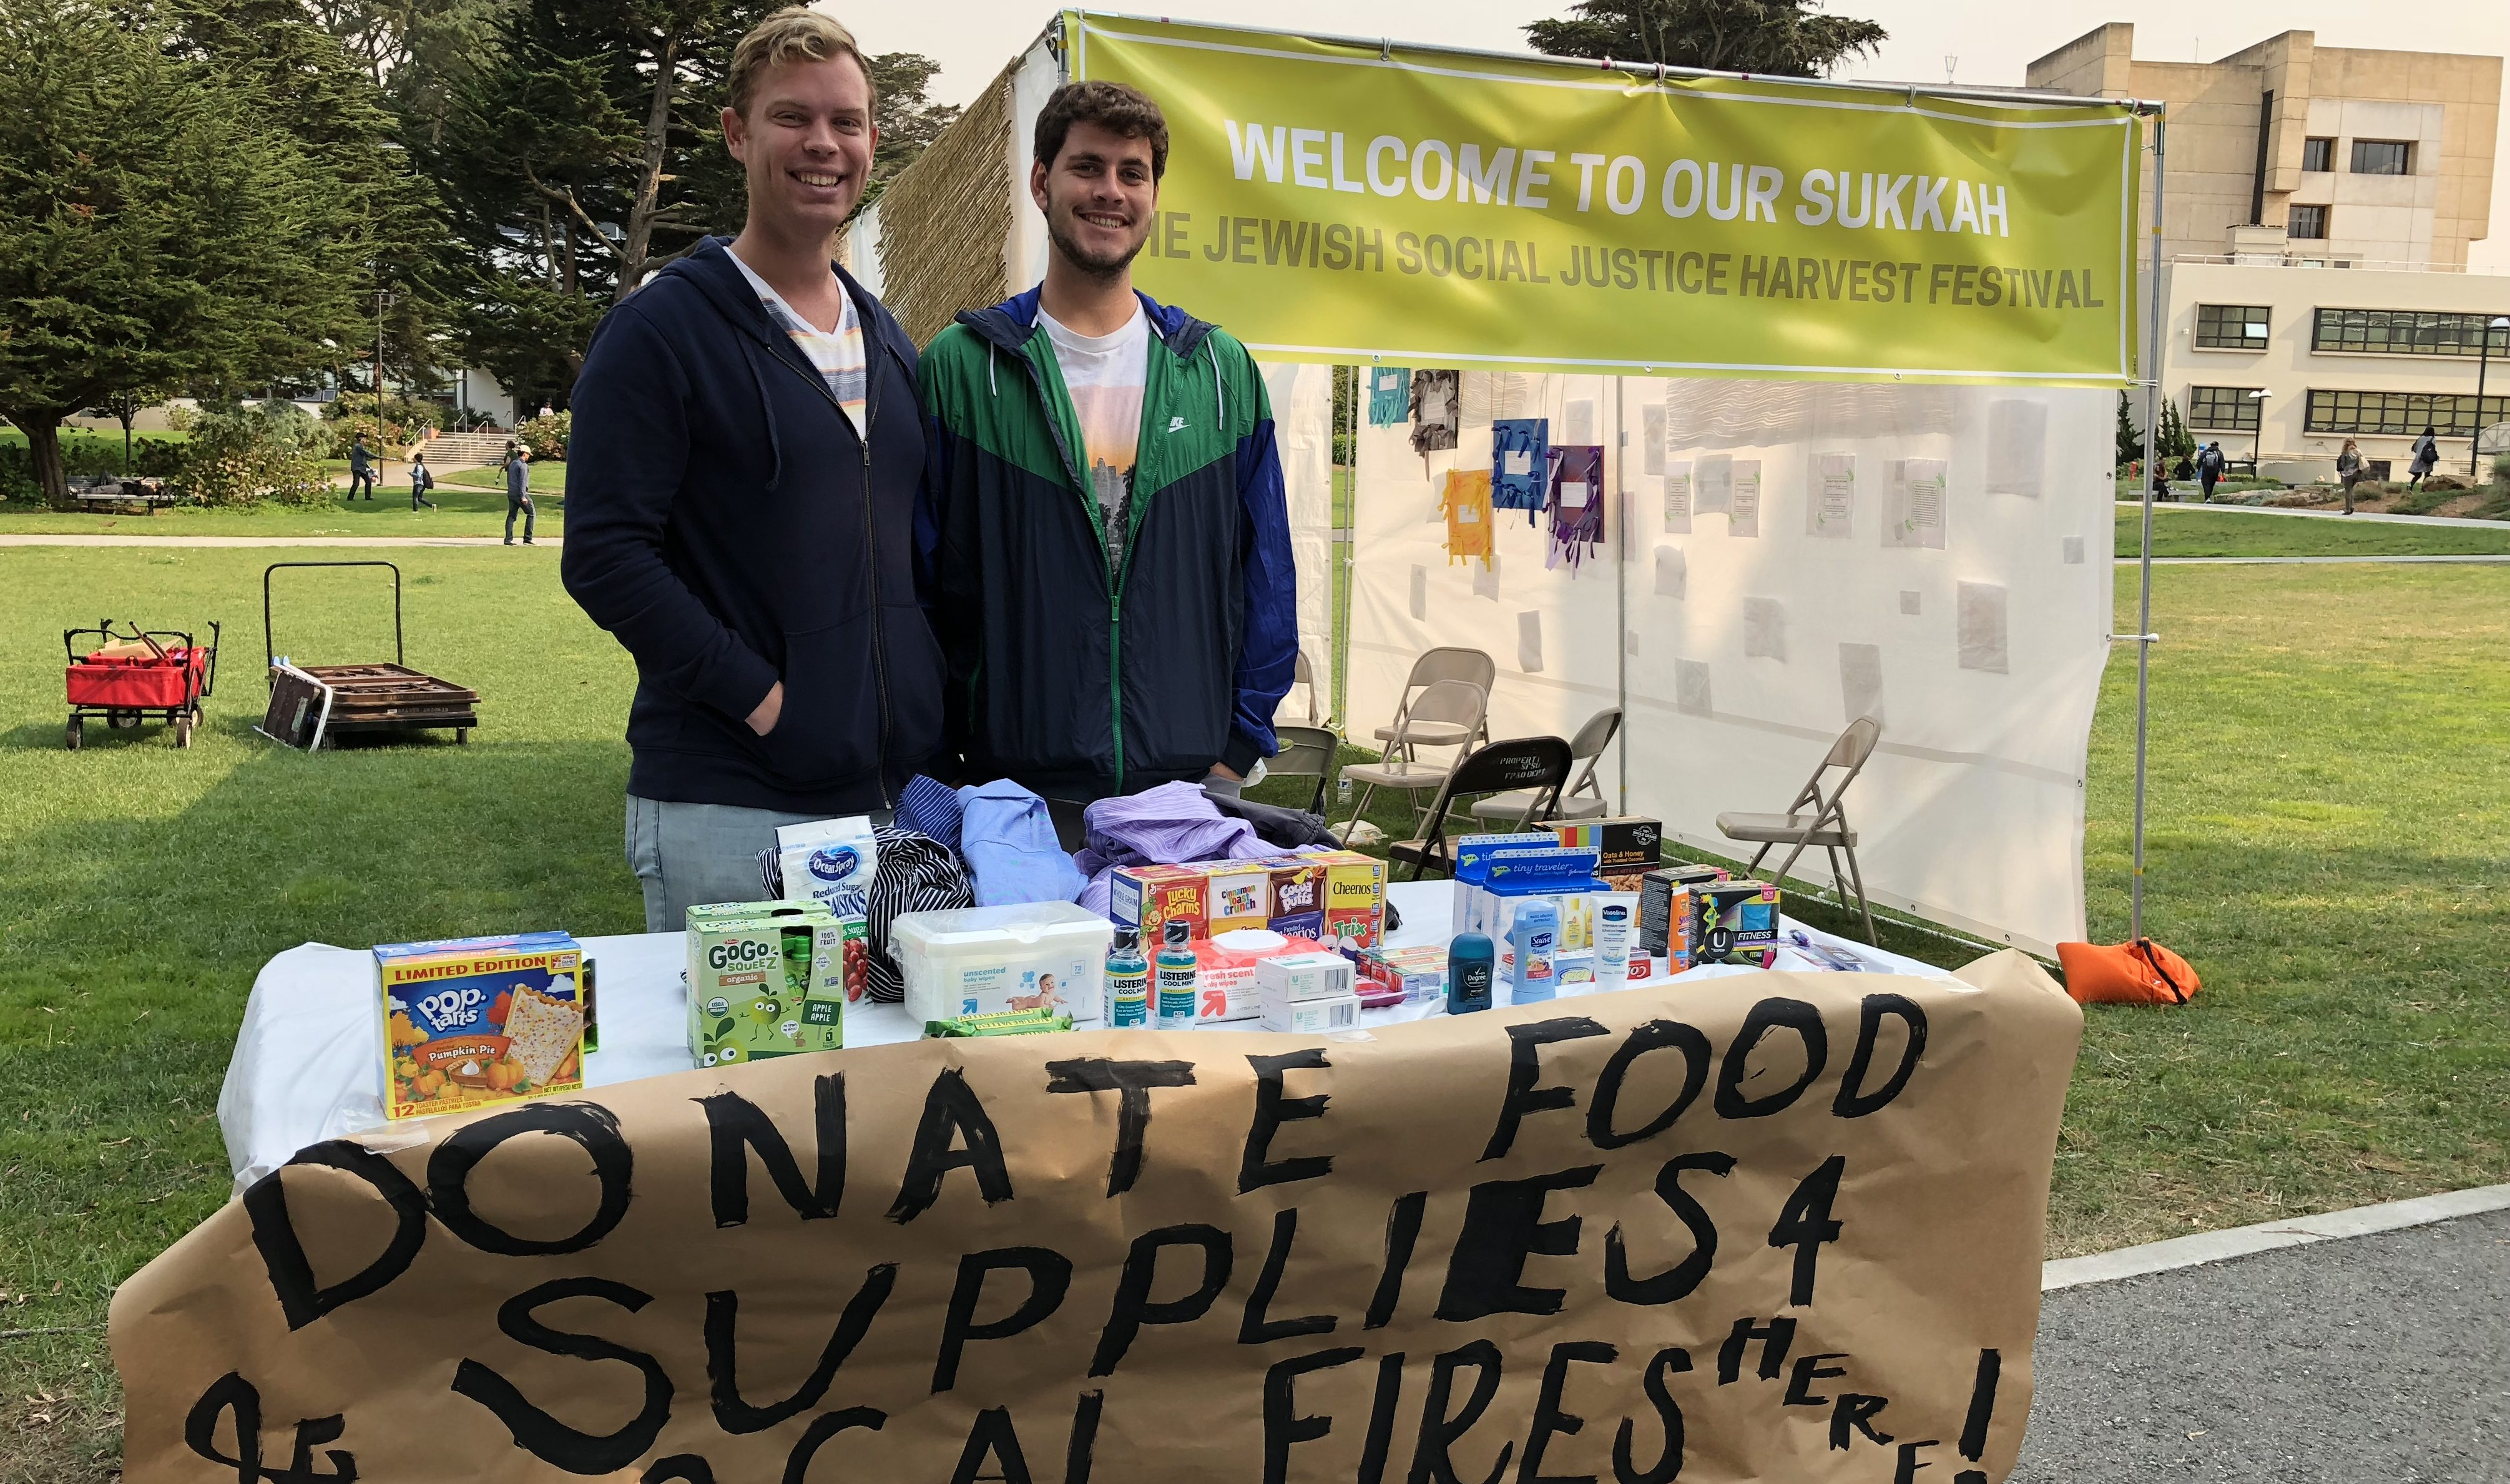 SF Hillel students Benjamin Gaster (left) and Jake Scheinberg collecting donations in front of their campus sukkah. (Photo/Courtesy SF Hillel)